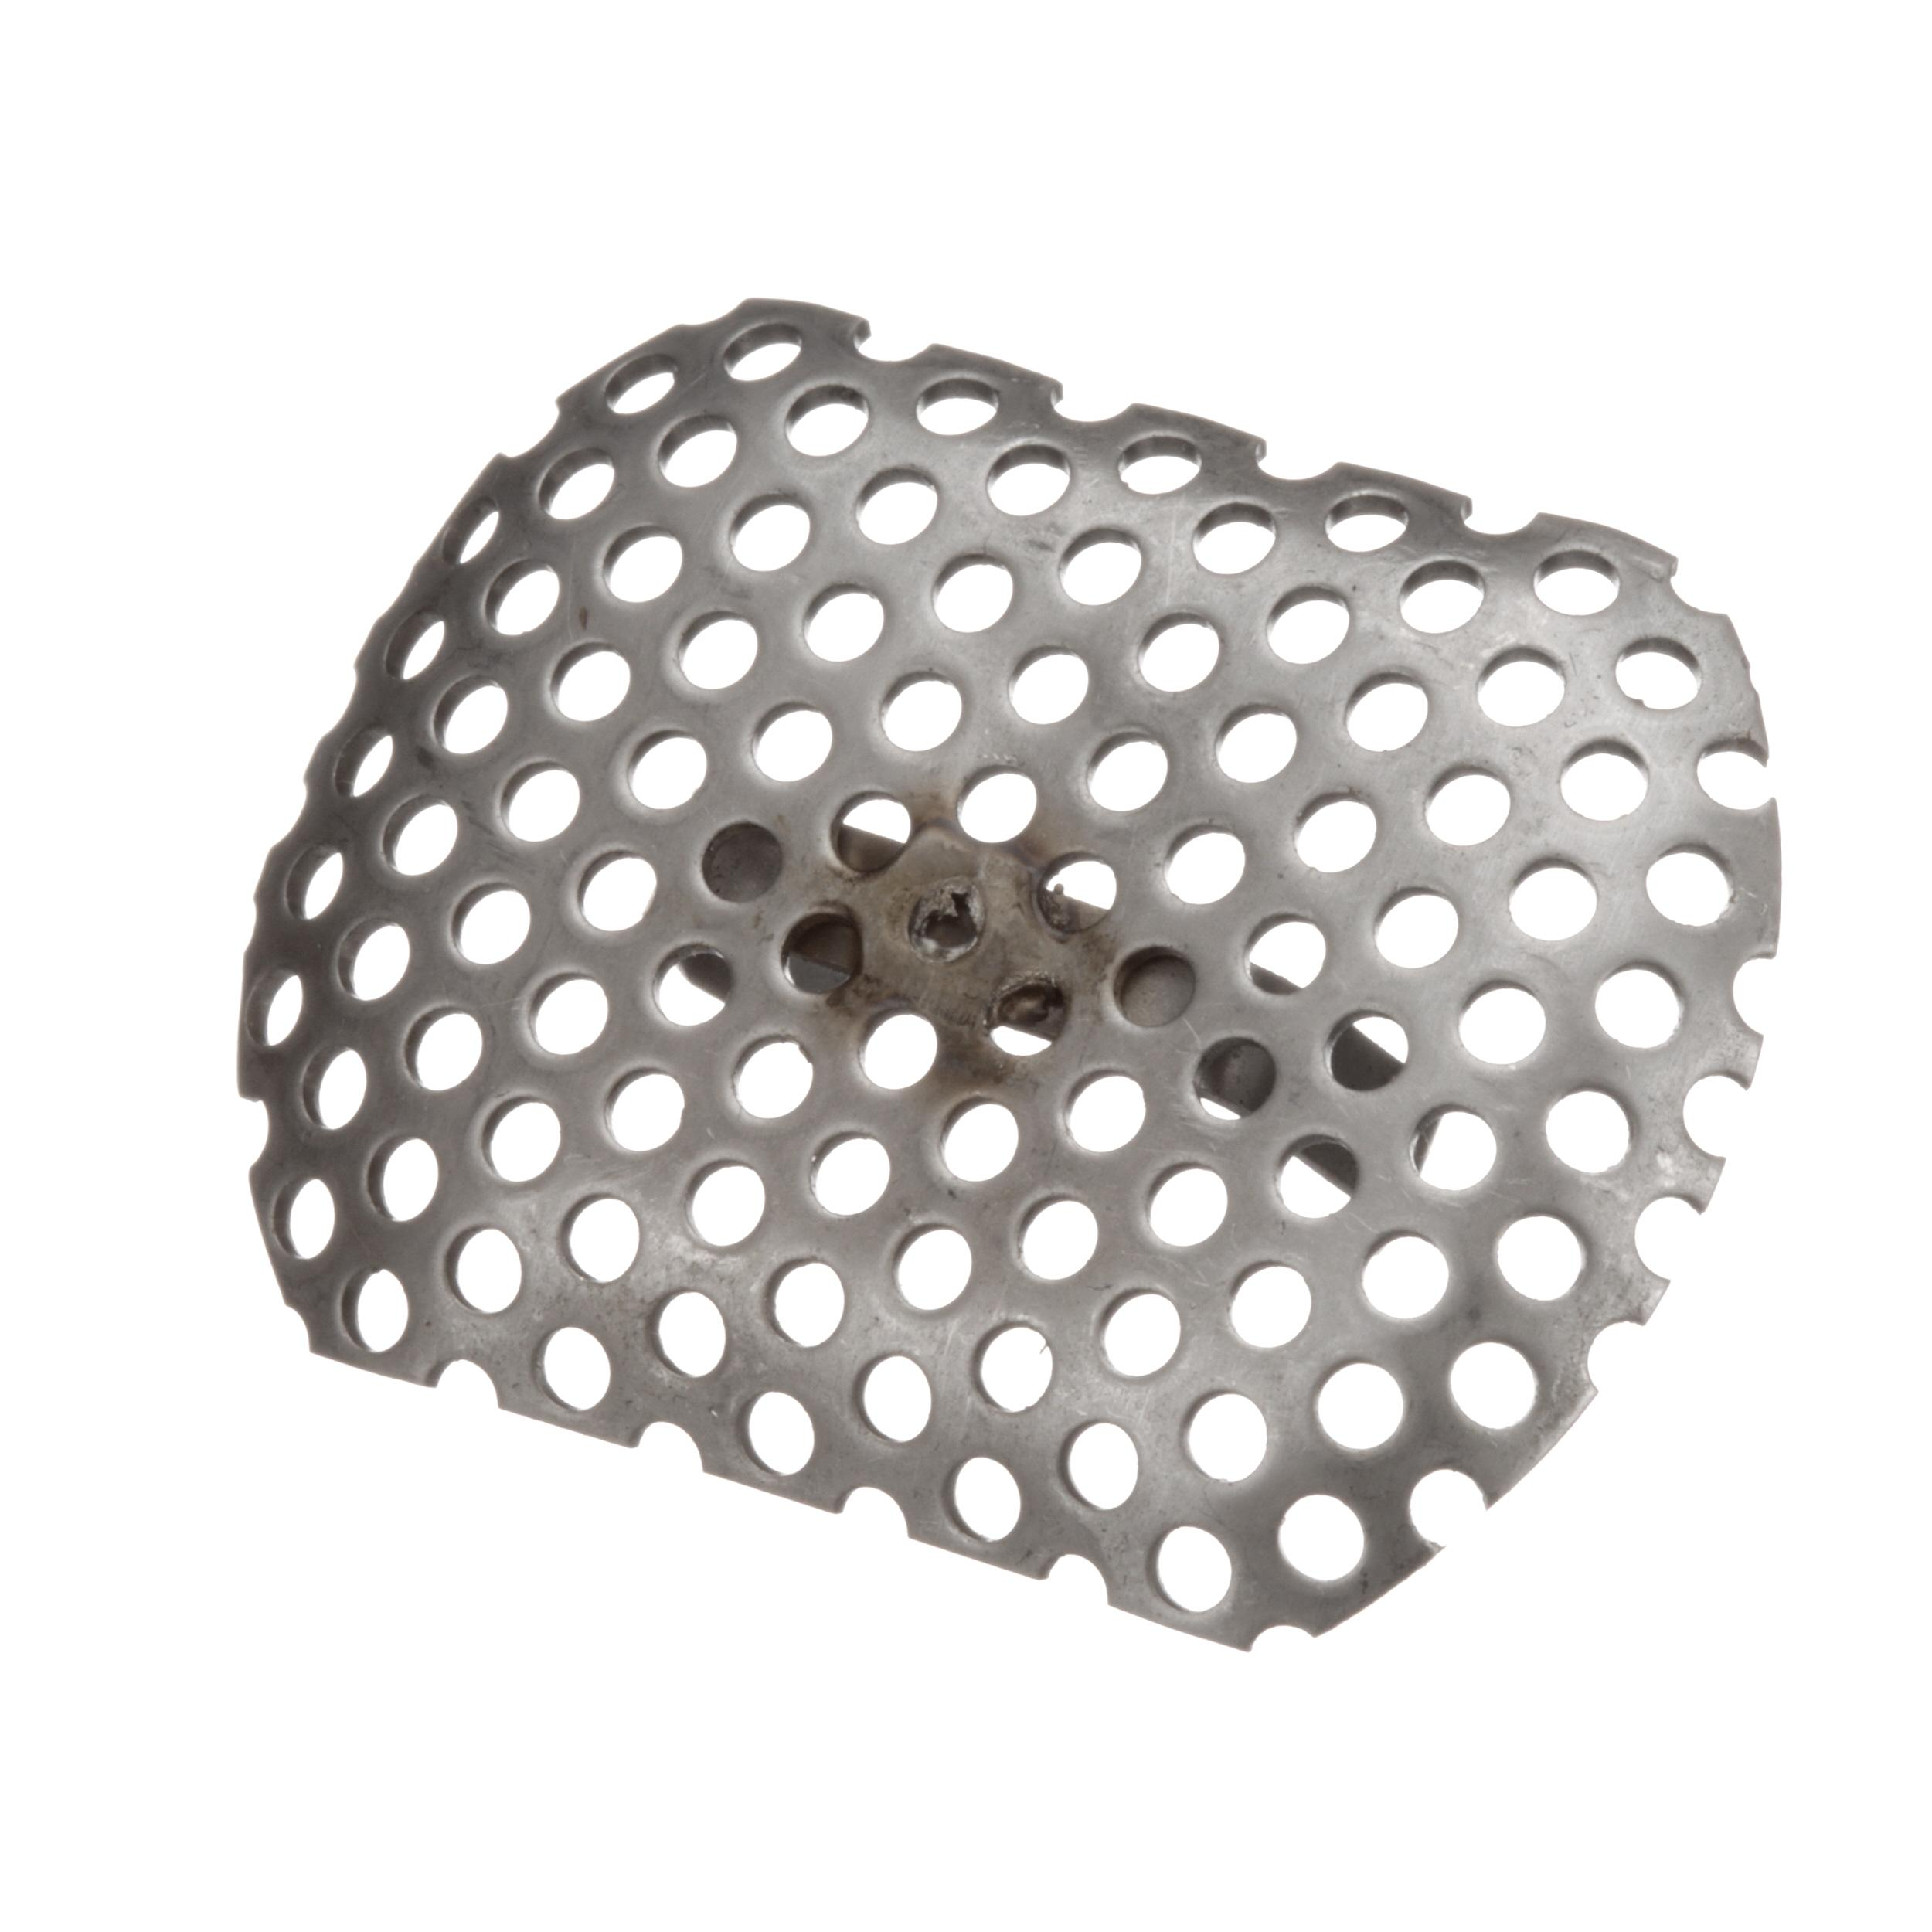 DELFIELD PLUG,PERFORATED,DFW DRAIN, SCREEN